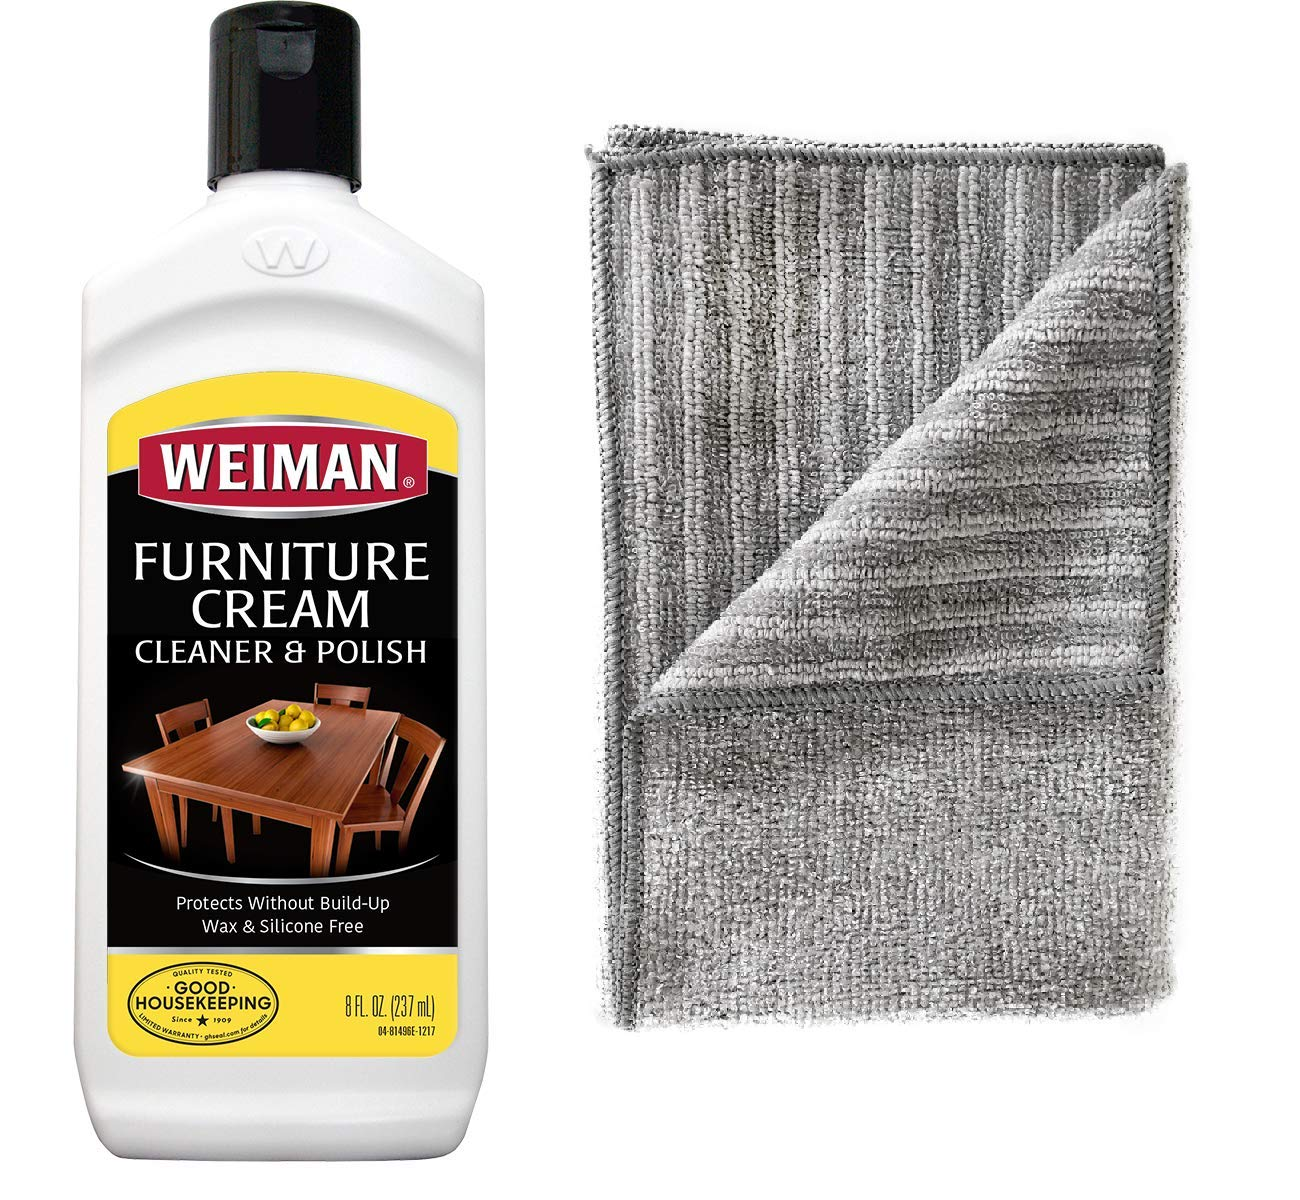 Weiman Wood Polish and Cleaner [8 Ounce with Microfiber Cloth] Furniture Cream with Lemon Oil Restore Luster and Prevent Sun Damage Without Dulling Buildup